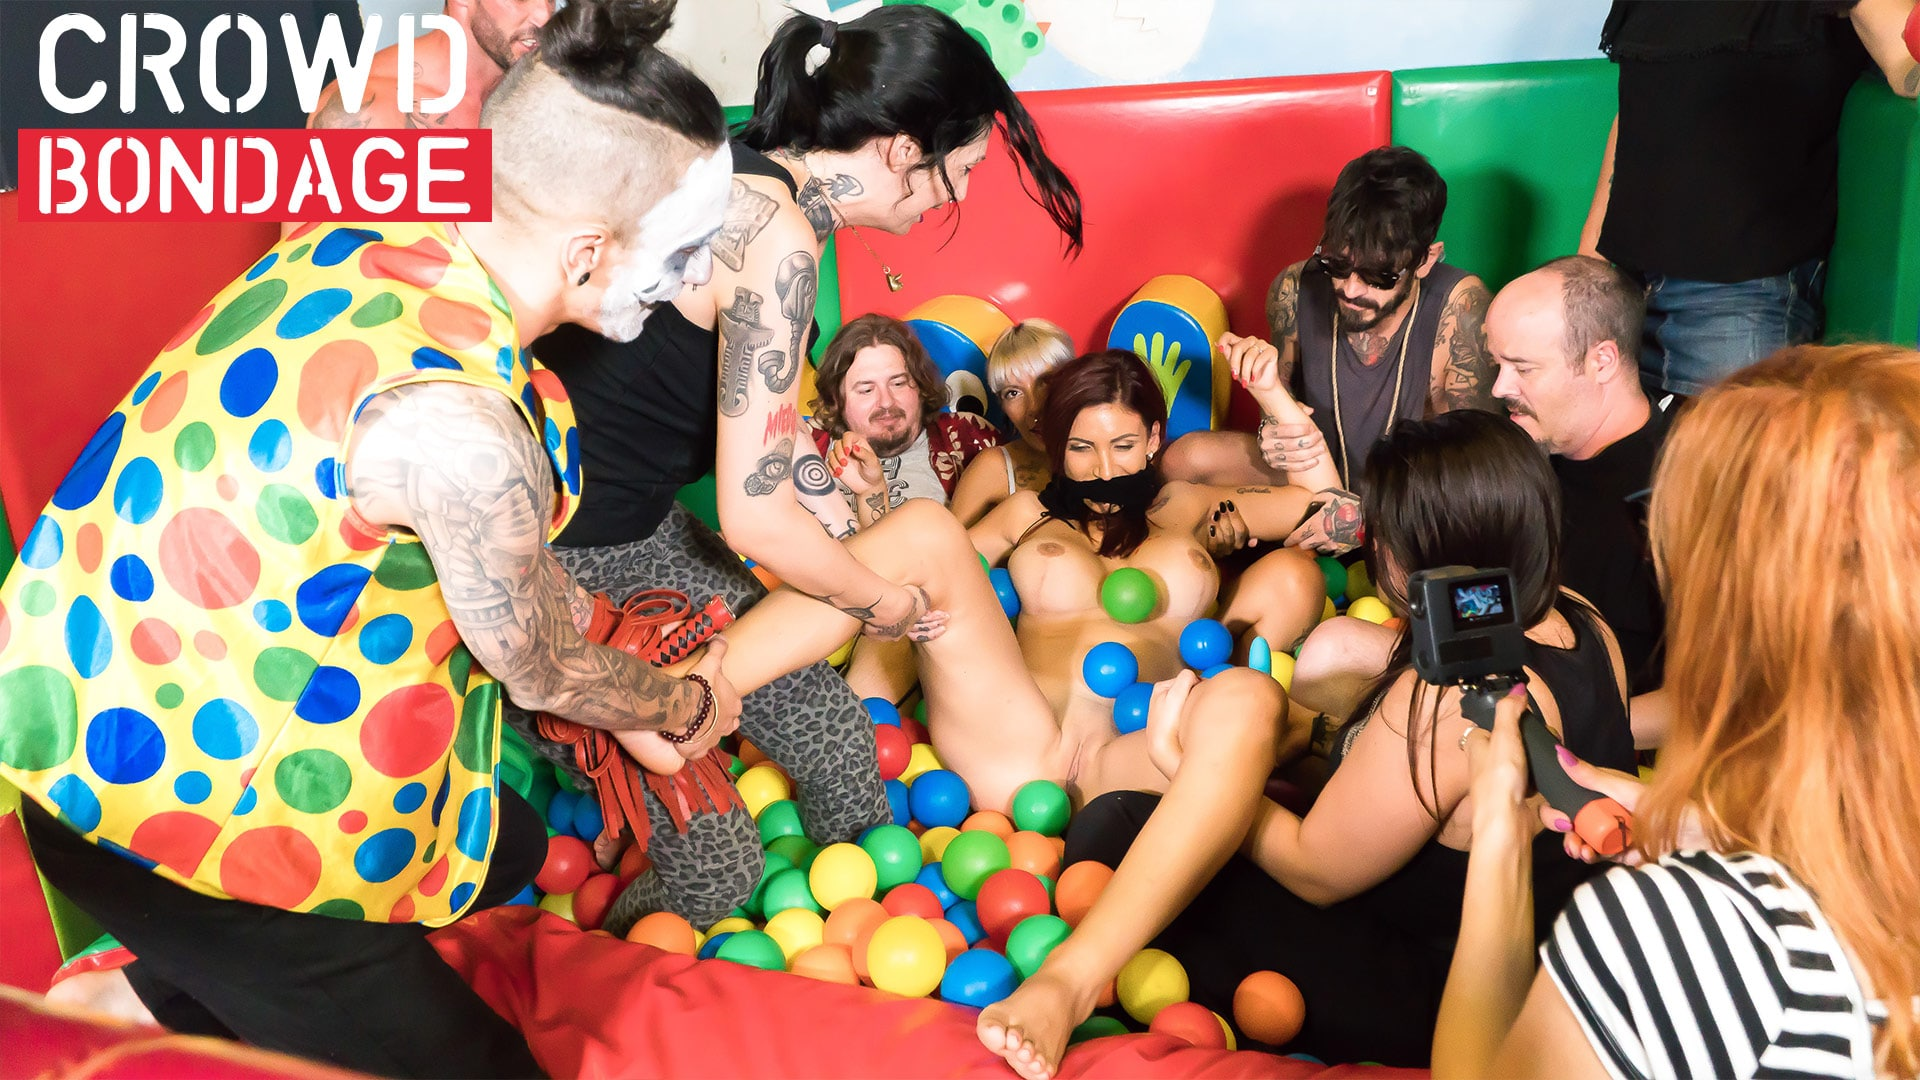 Crowd Bondage Ball Fuck Party